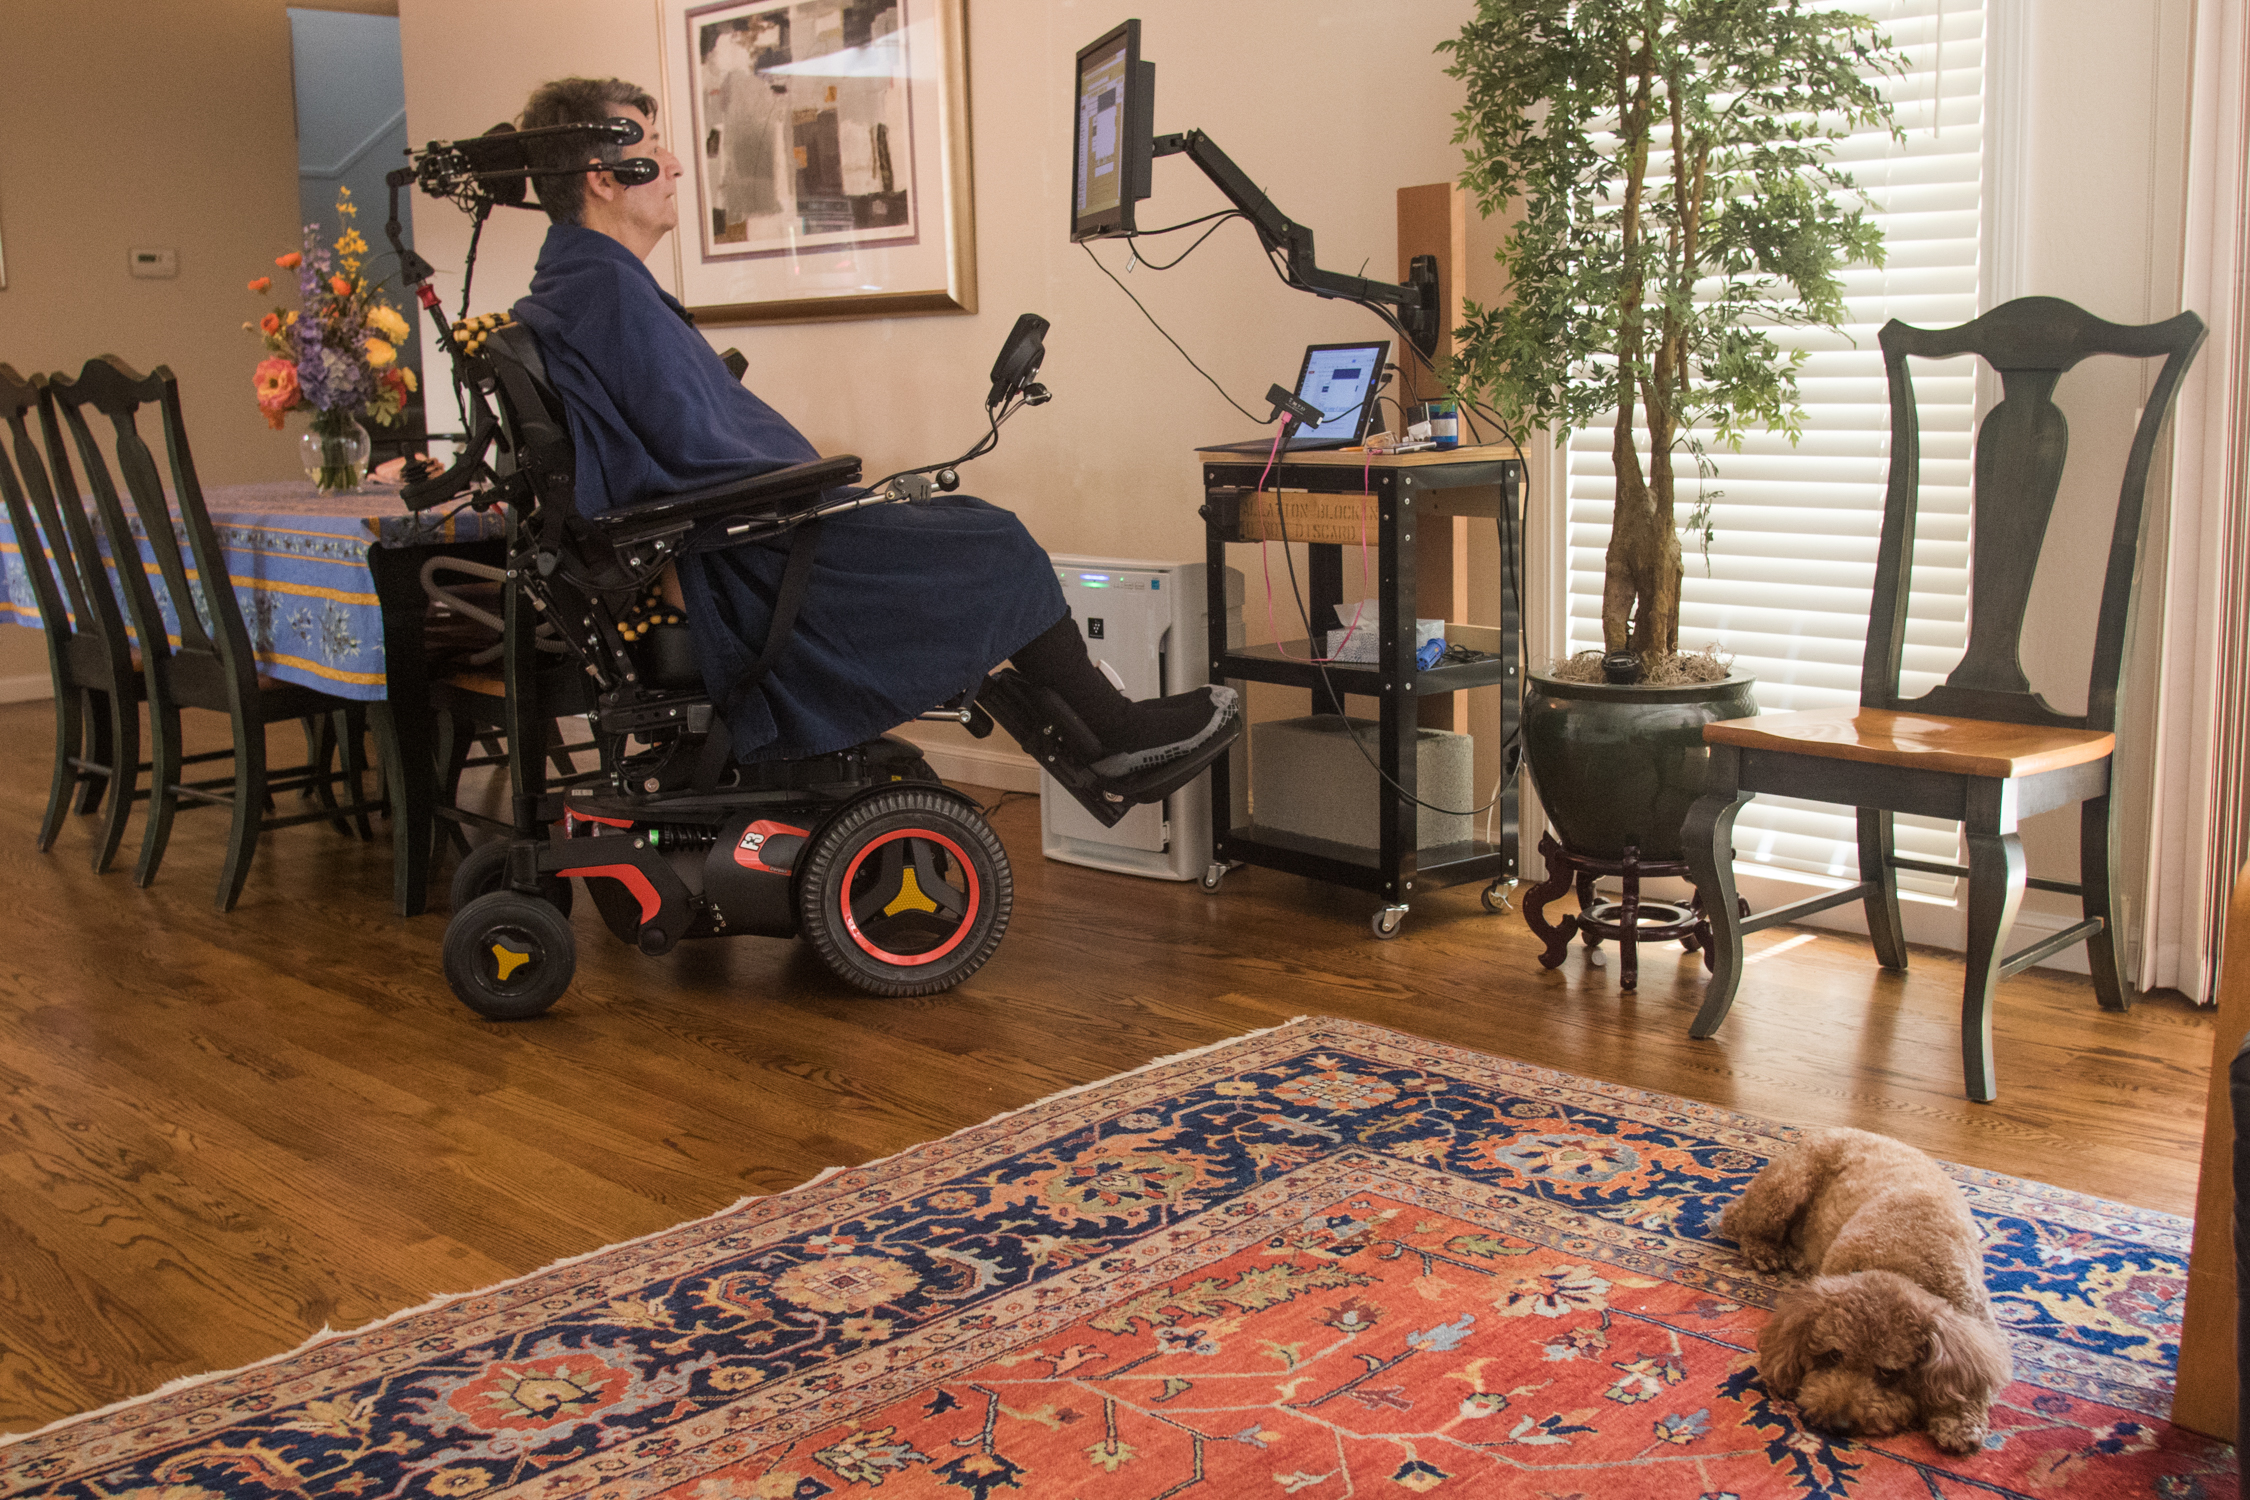 Jon Ferraiolo reads news articles online using his eye-tracking software at his home workstation on May 9, with his dog, Pepe, beside him.